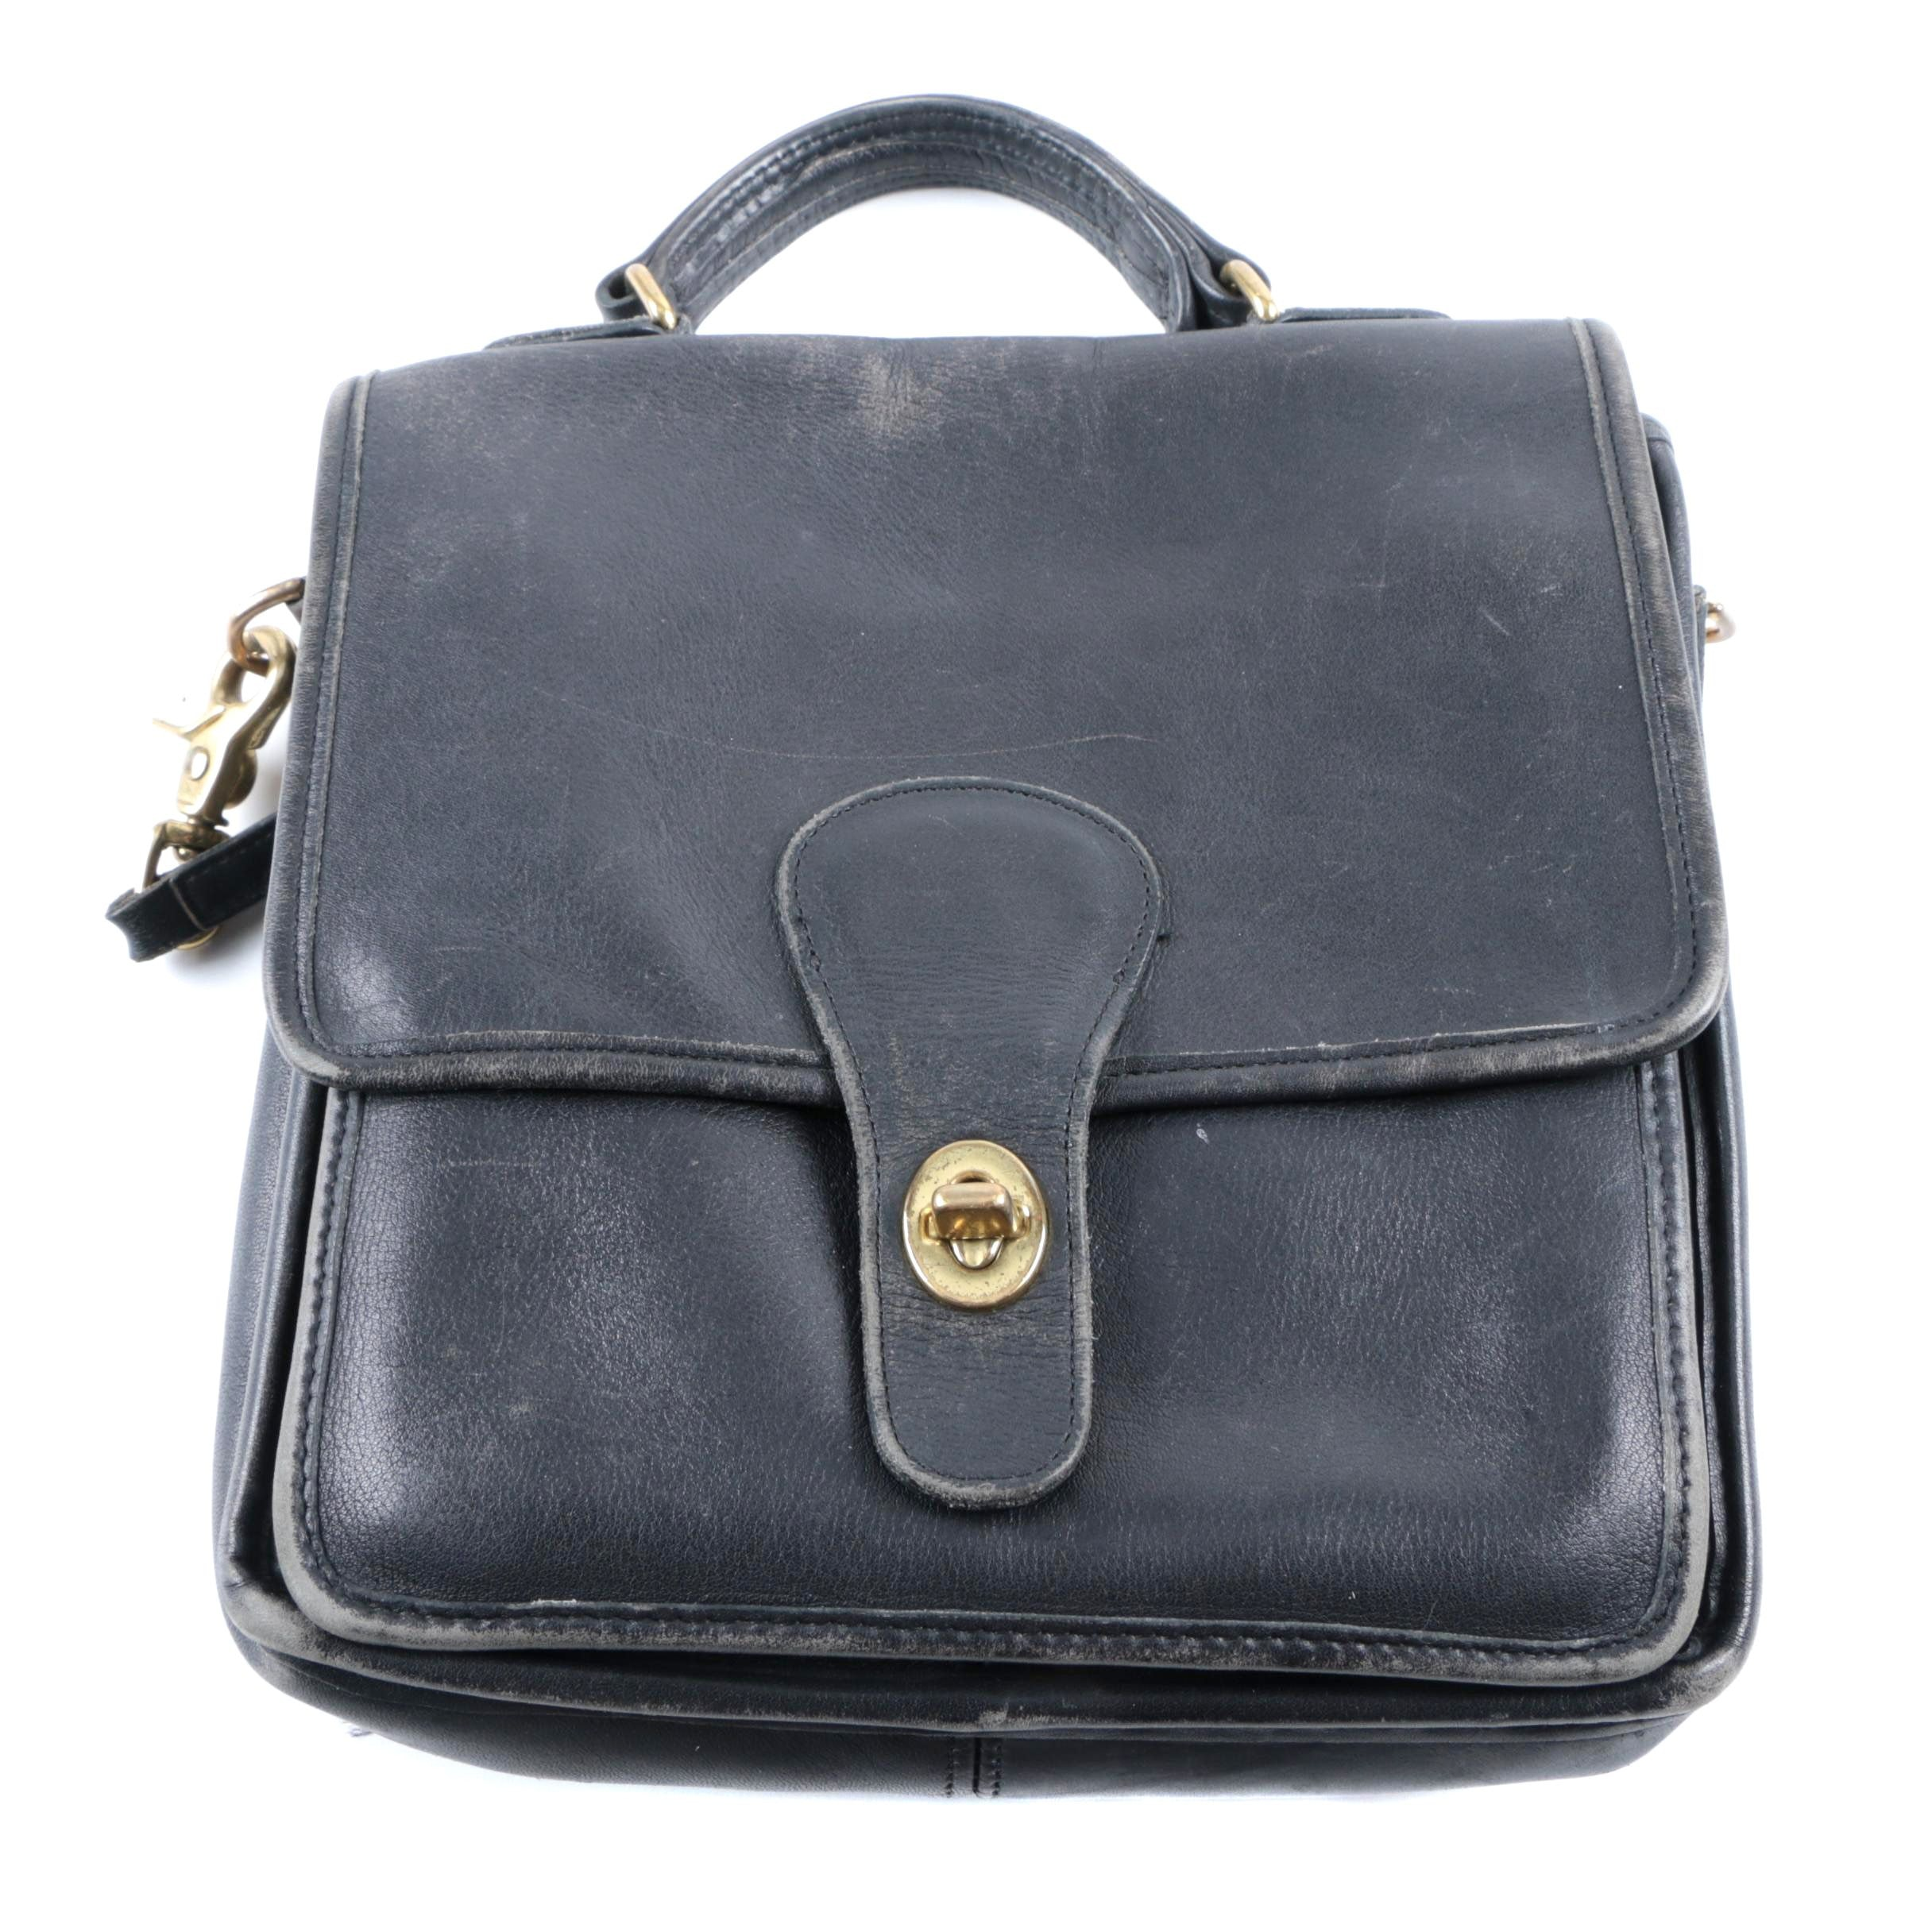 Vintage Coach Black Leather Handbag